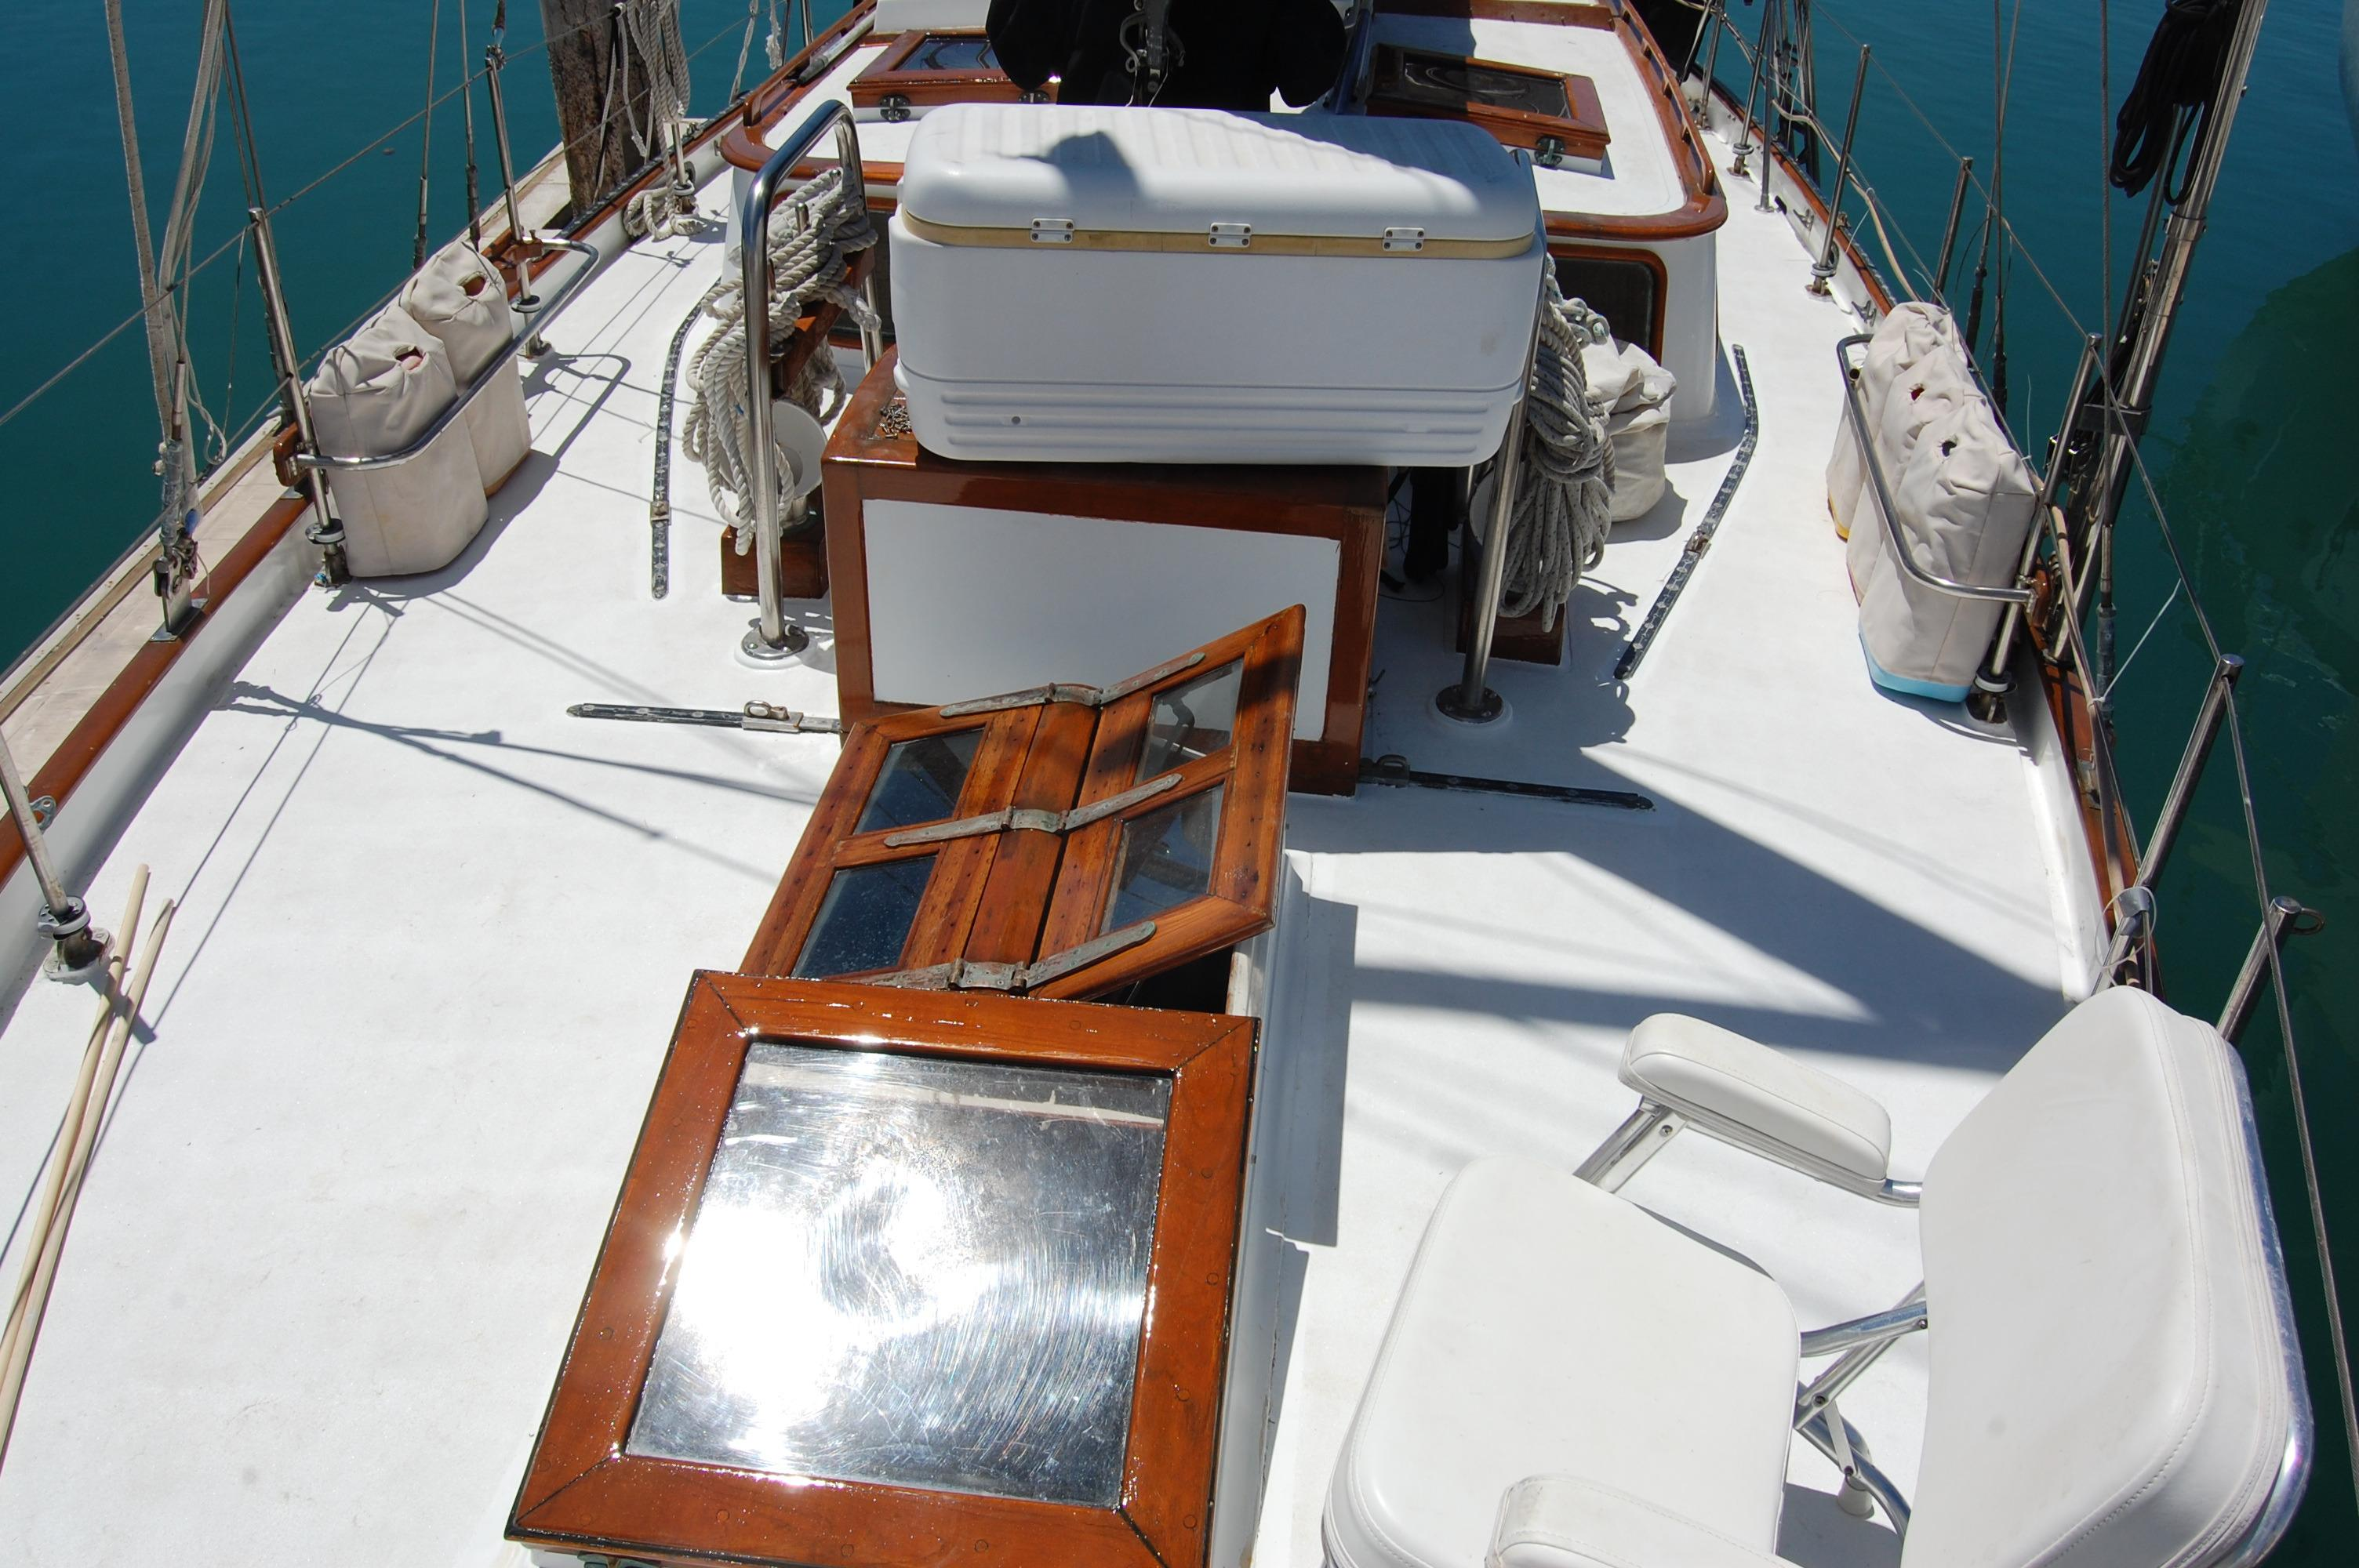 43' Spindrift Pilothouse Cutter+Photo 8